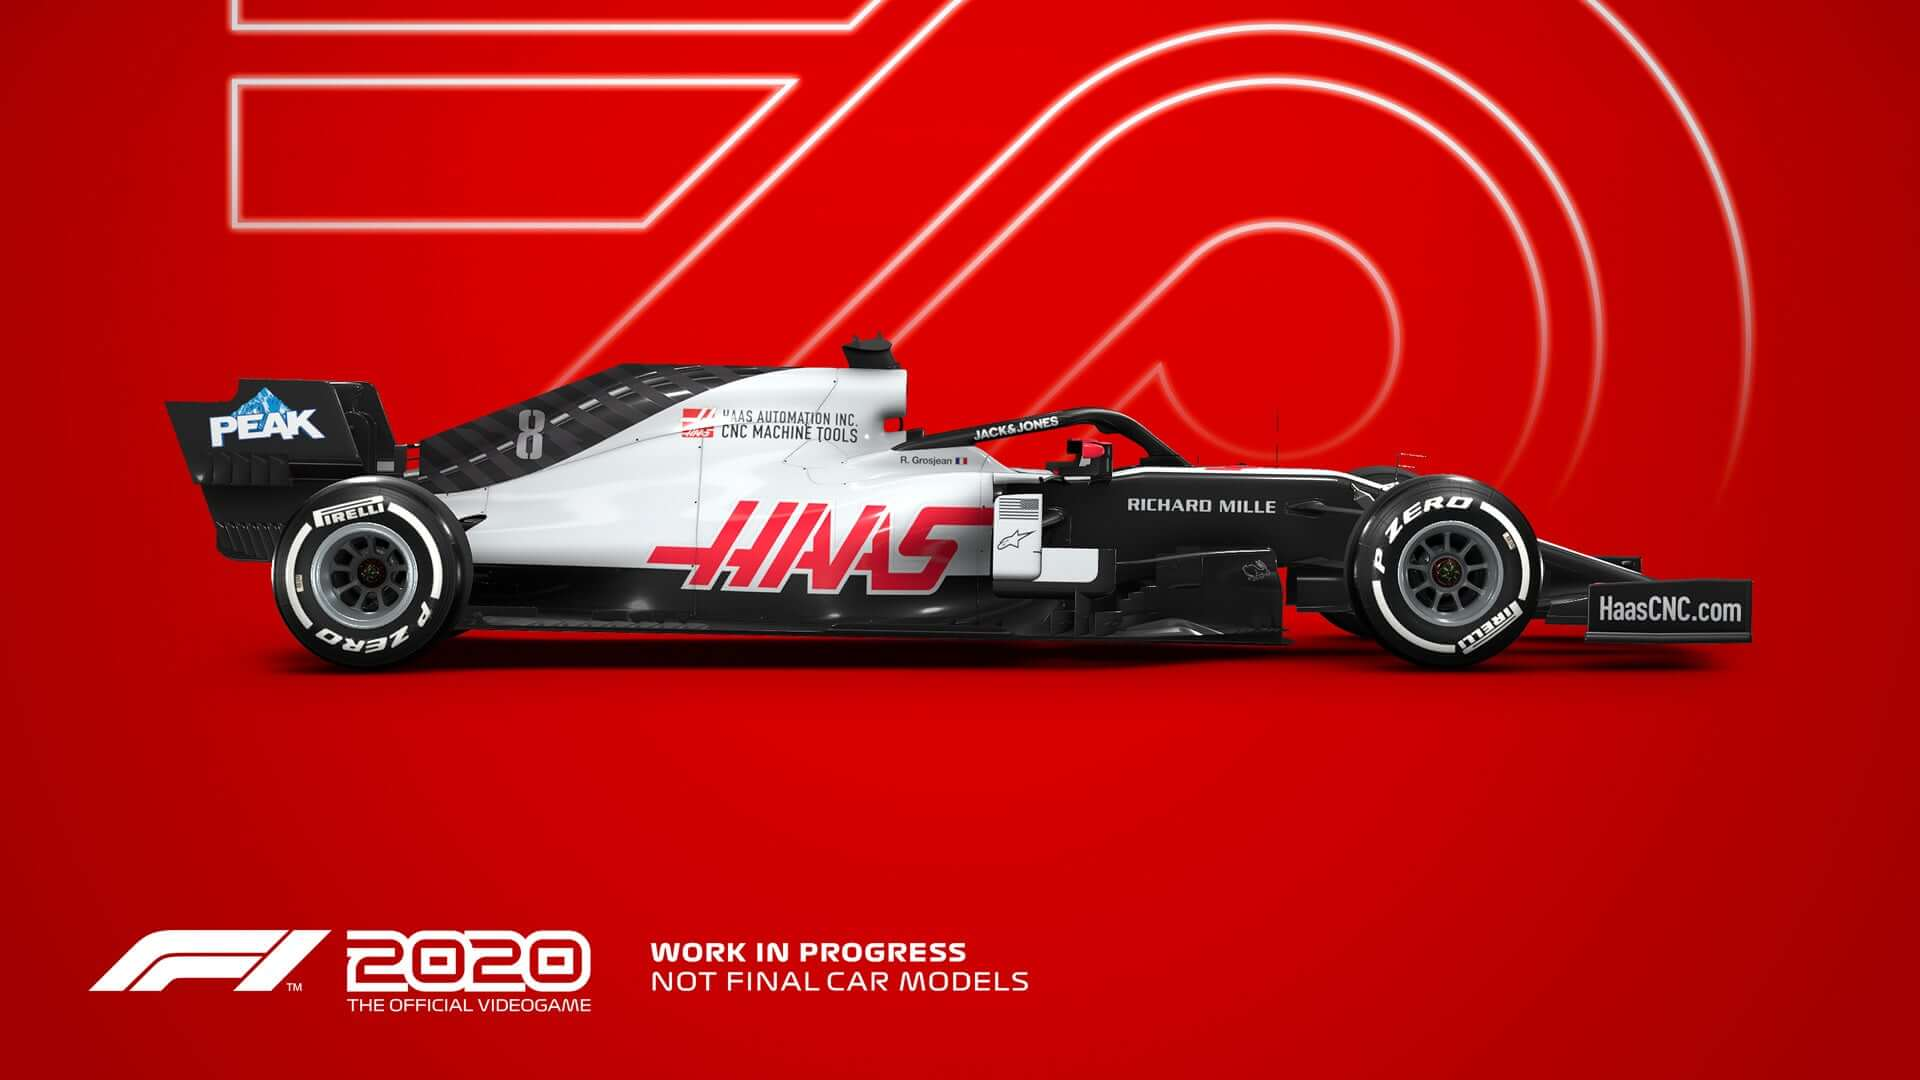 F1 2020 game to be released in July, includes management mode